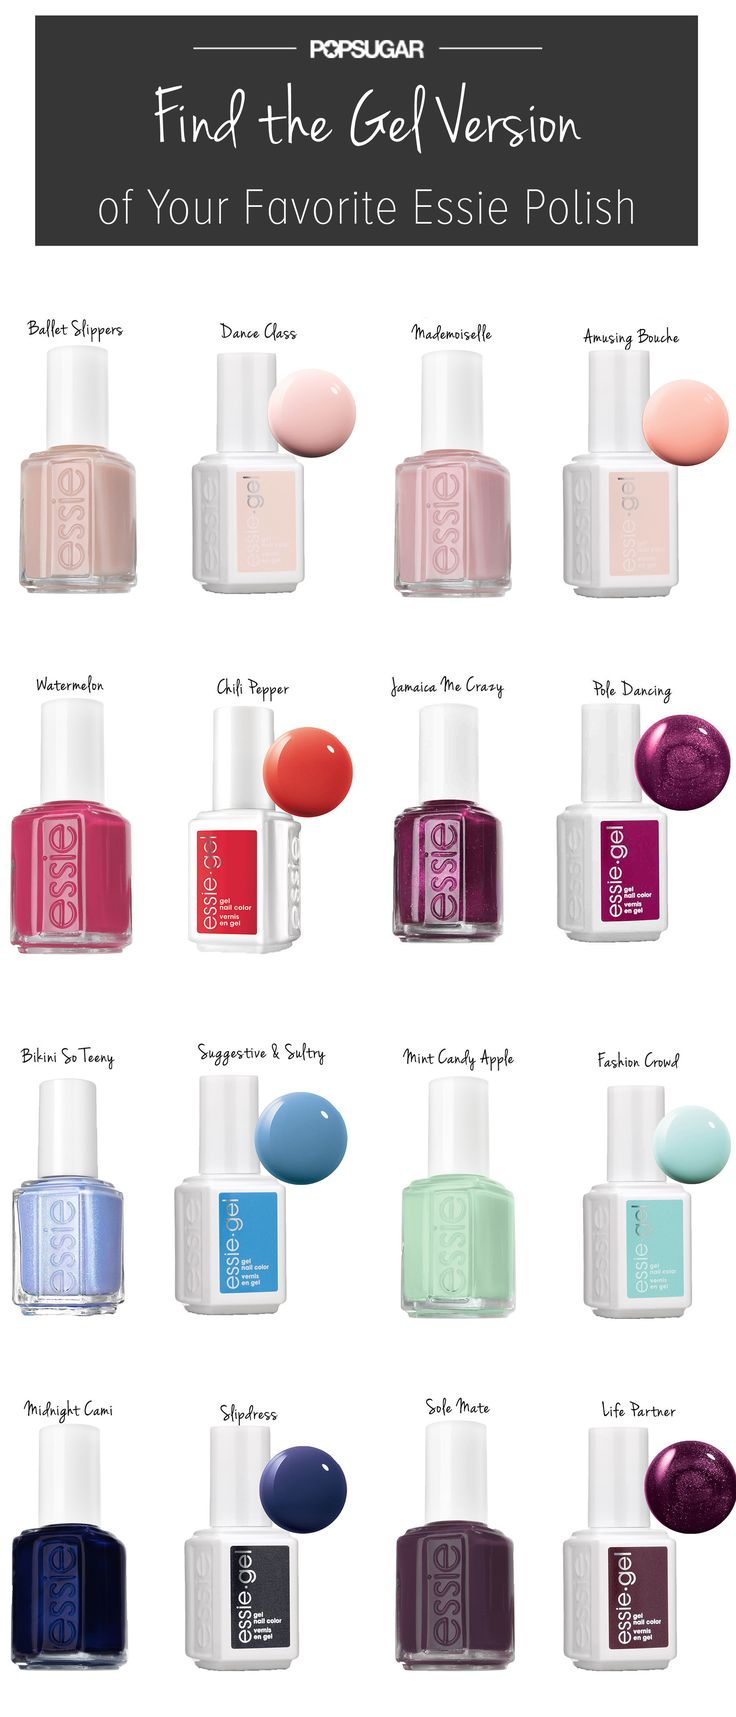 Match your favorite Essie hue to its gel polish counterpart! #manicure